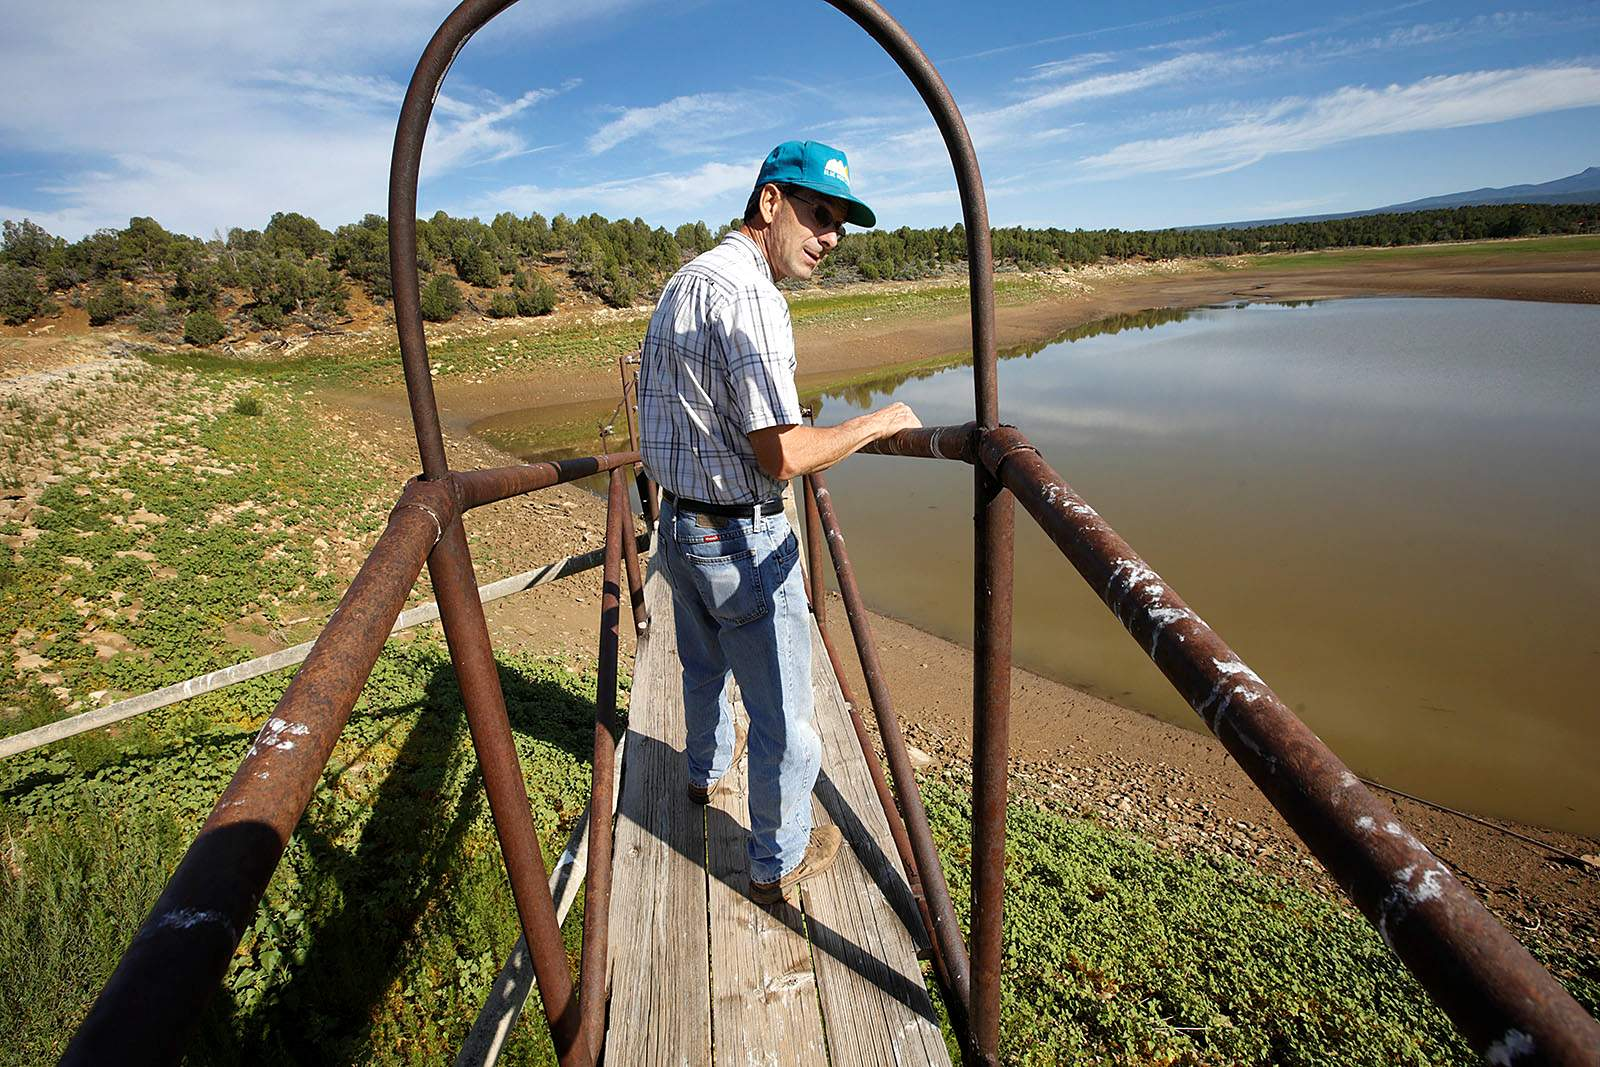 Red Mesa Reservoir inches closer to improvement project - The Durango Herald